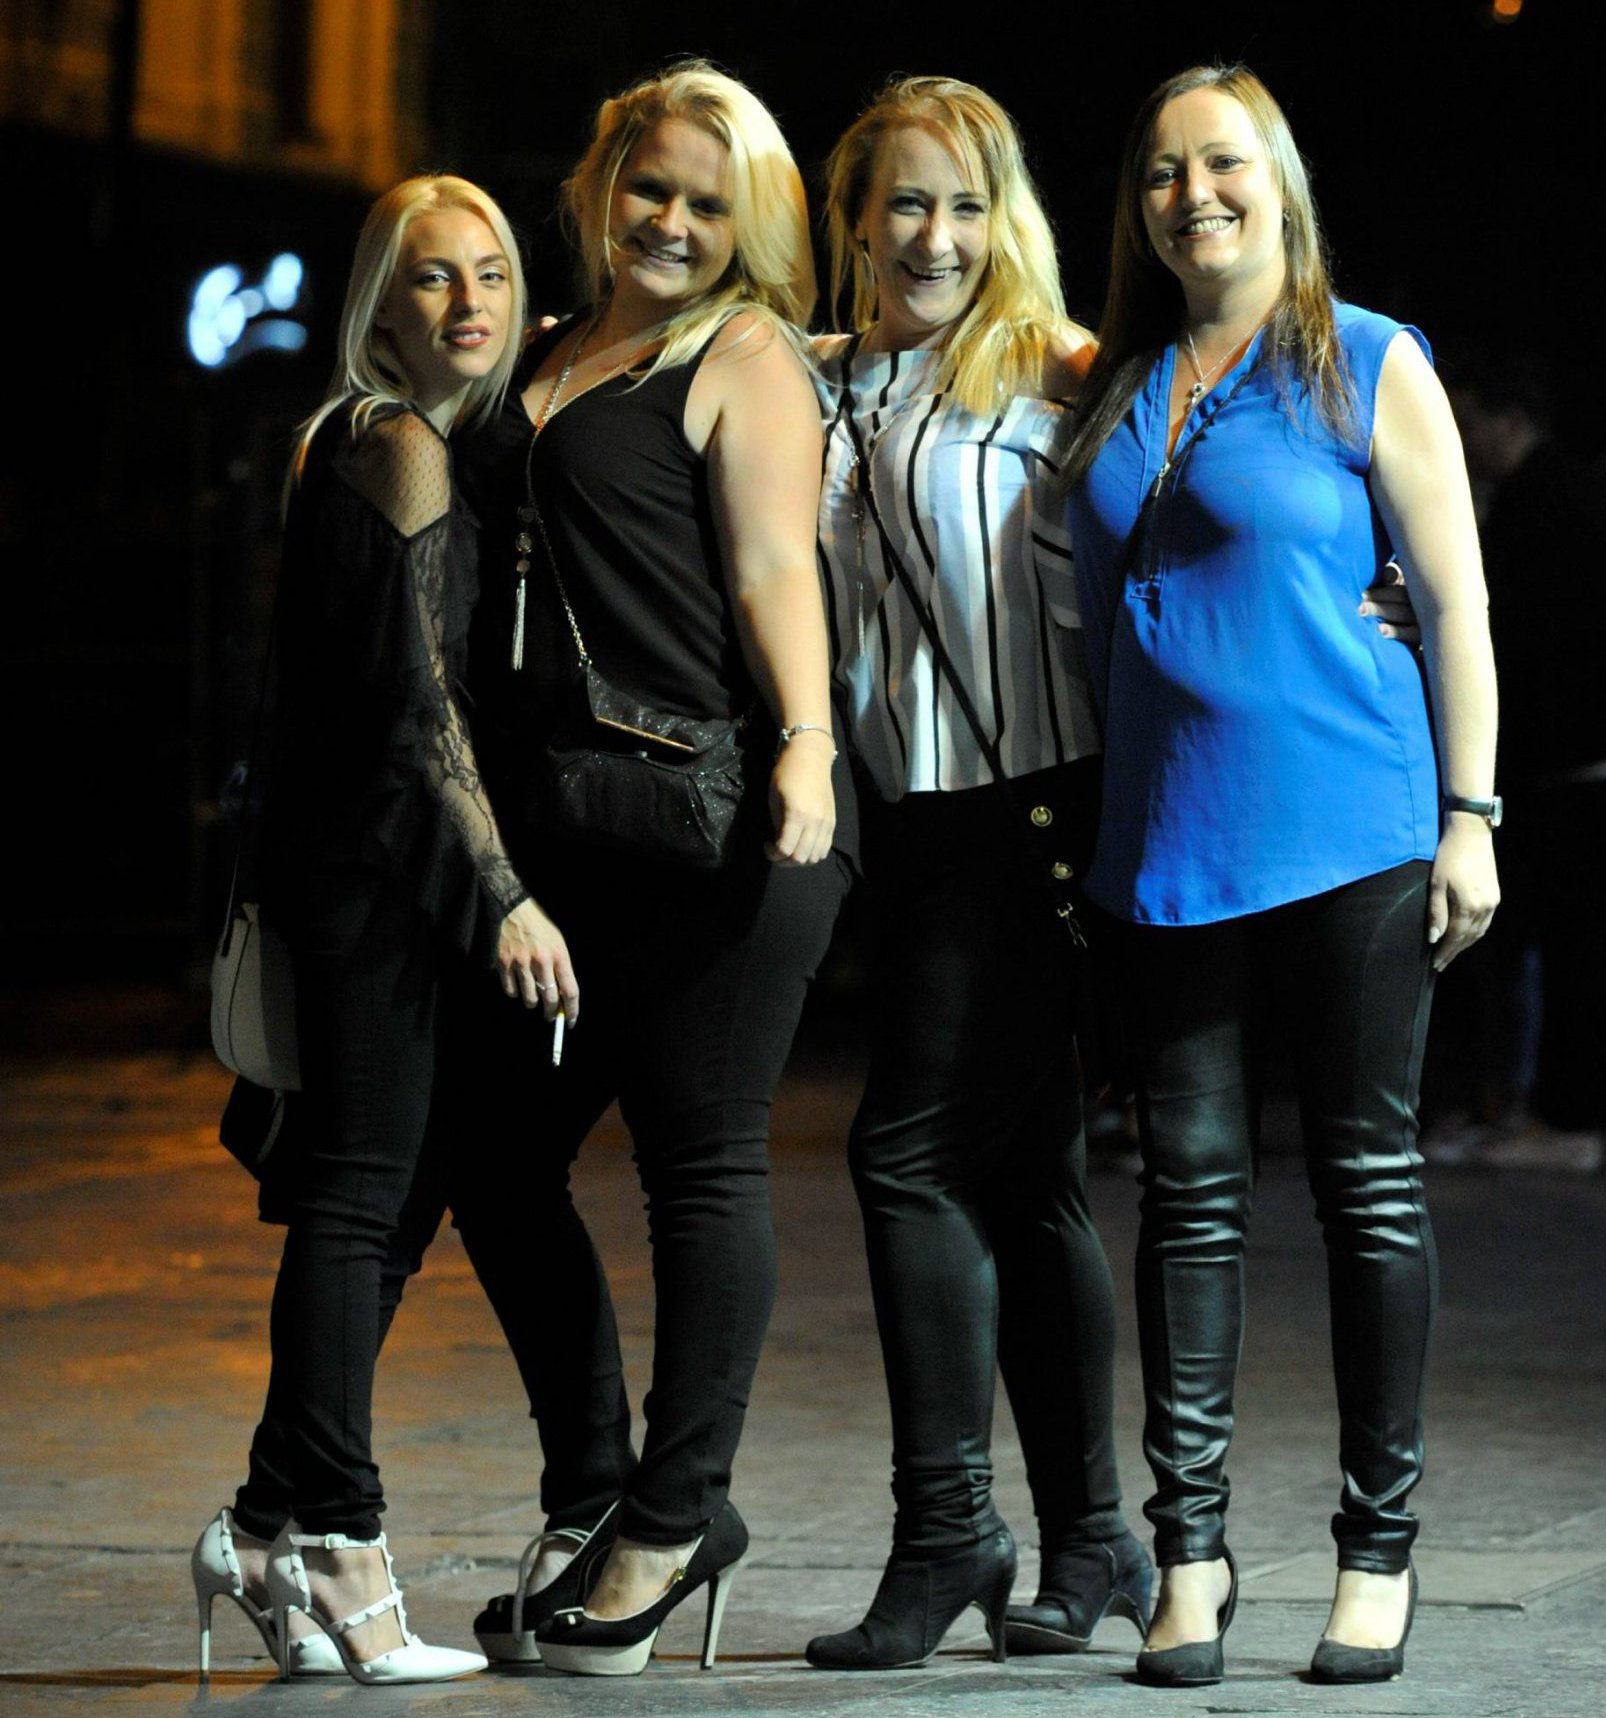 Dated: 25/08/2018 Revellers enjoy a night on the town as drinkers hit Newcastle's Bigg Market to mark the start of August Bank Holiday weekend last night (FRI).